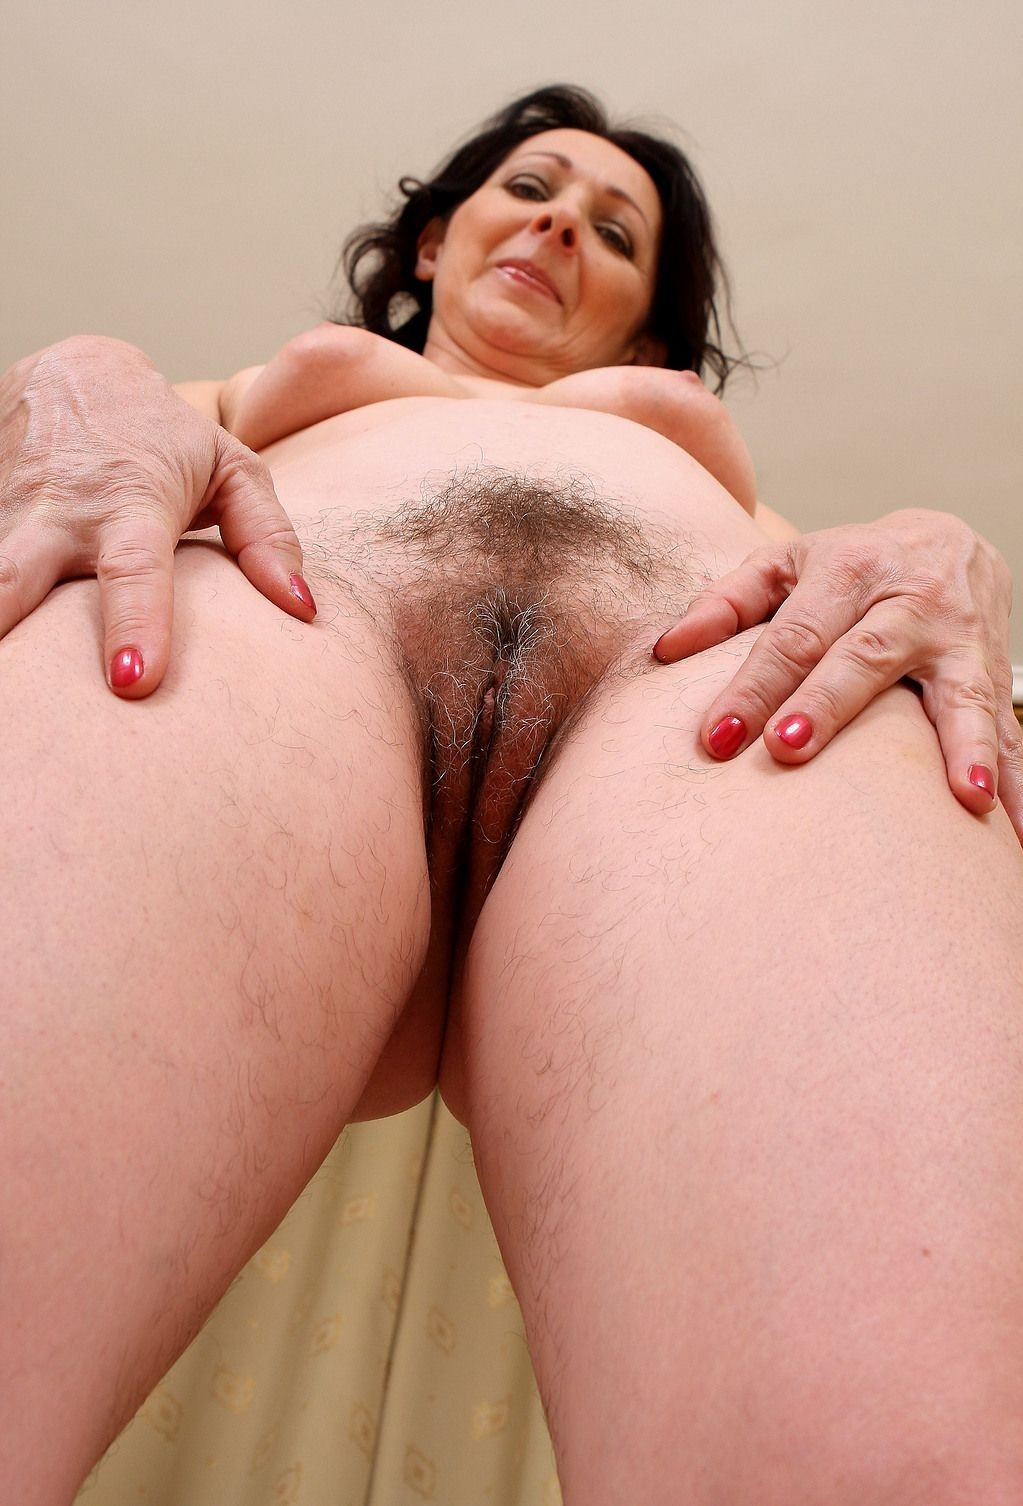 Uk mature shaved or hairy pussy — 3